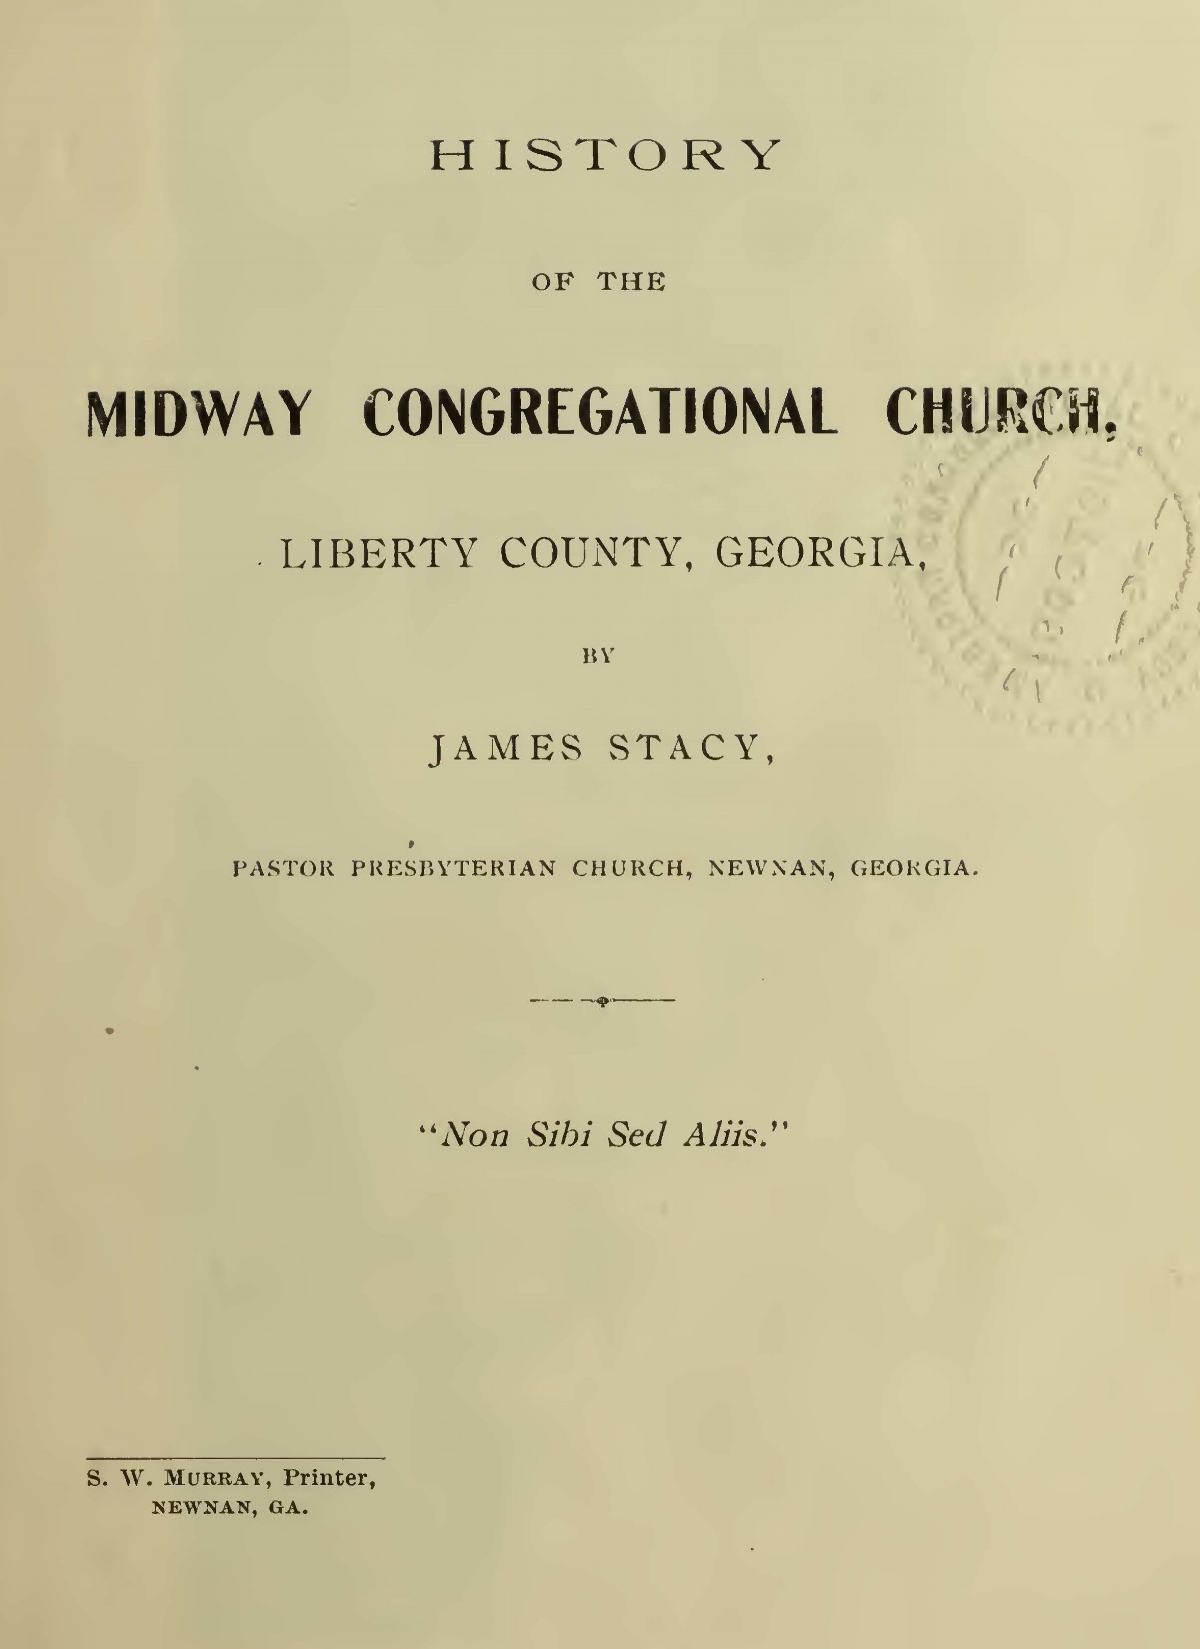 Stacy, James, History of the Midway Congregational Church, Liberty County, Georgia Title Page.jpg